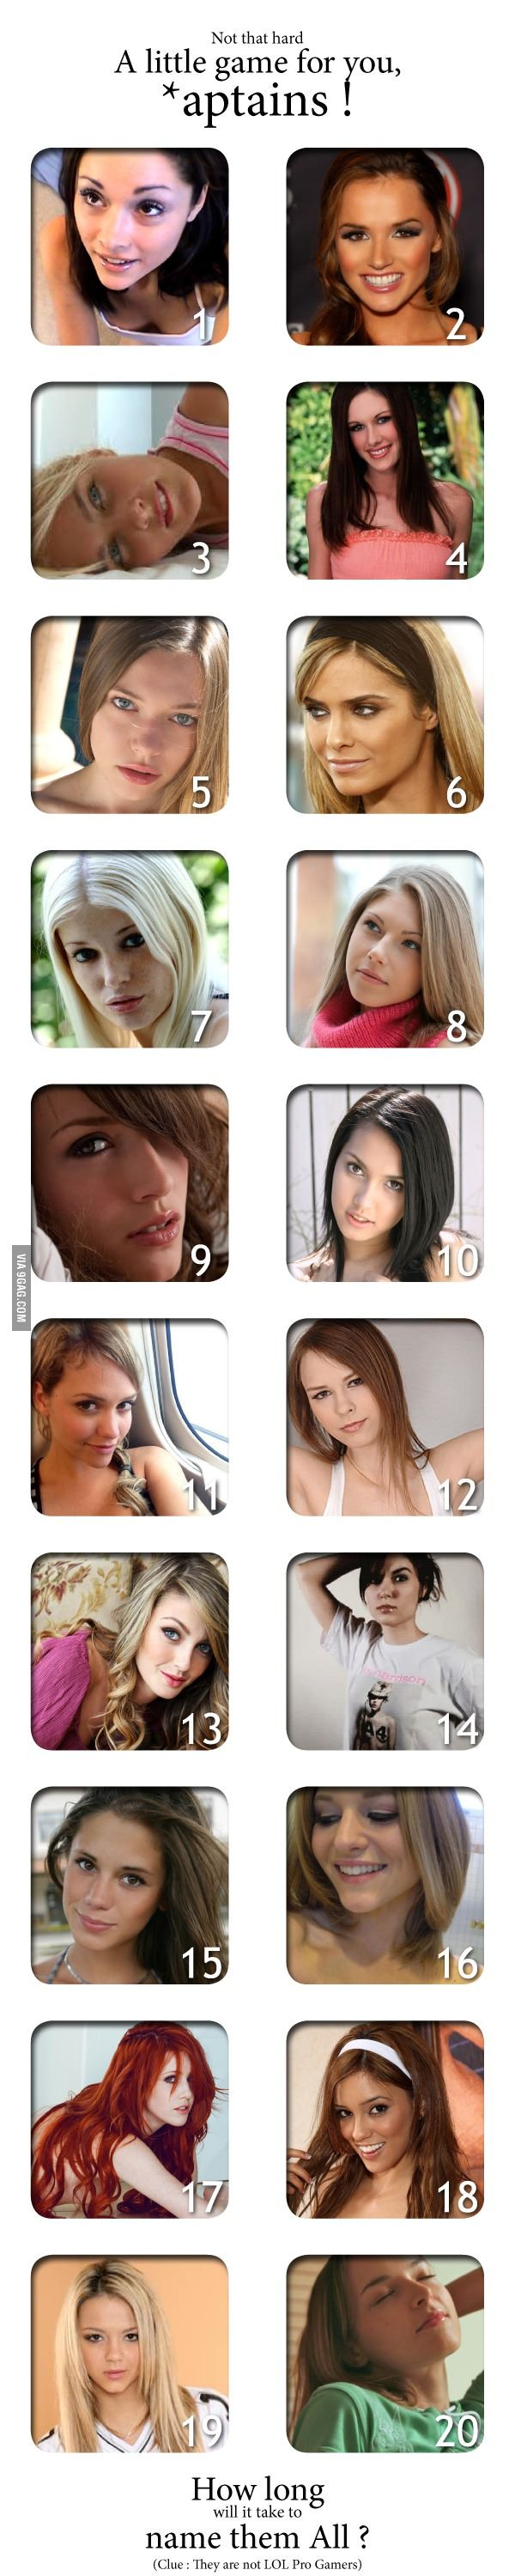 1627 best 9 gag images on pinterest 9 gag sports food and a little game for you aptains gumiabroncs Choice Image